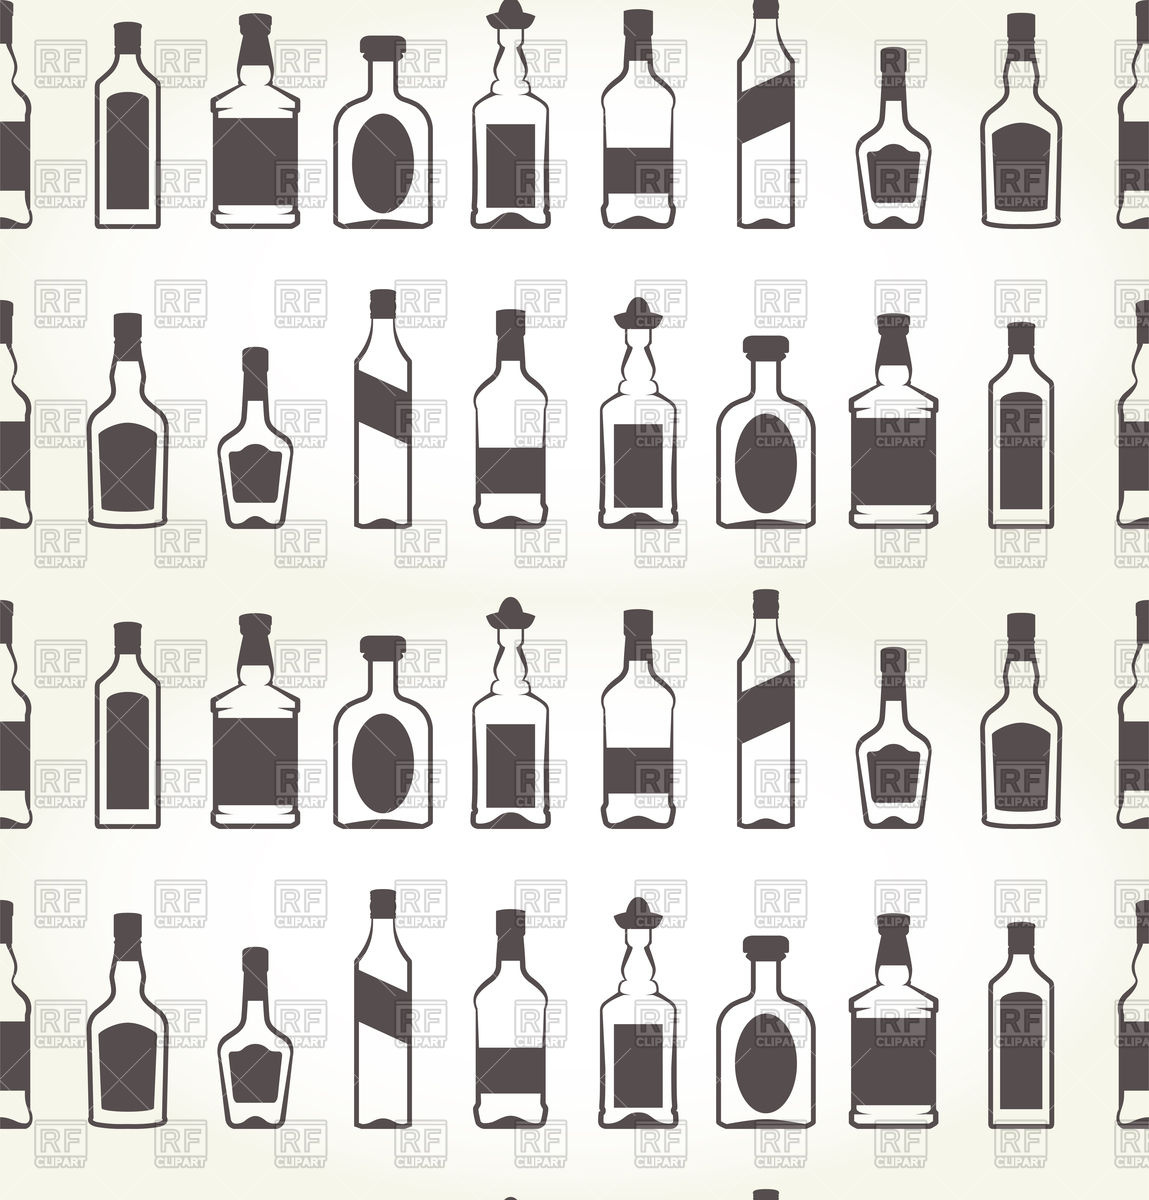 Alcohol bottels seamless patten   booze background Vector Image of 1149x1200